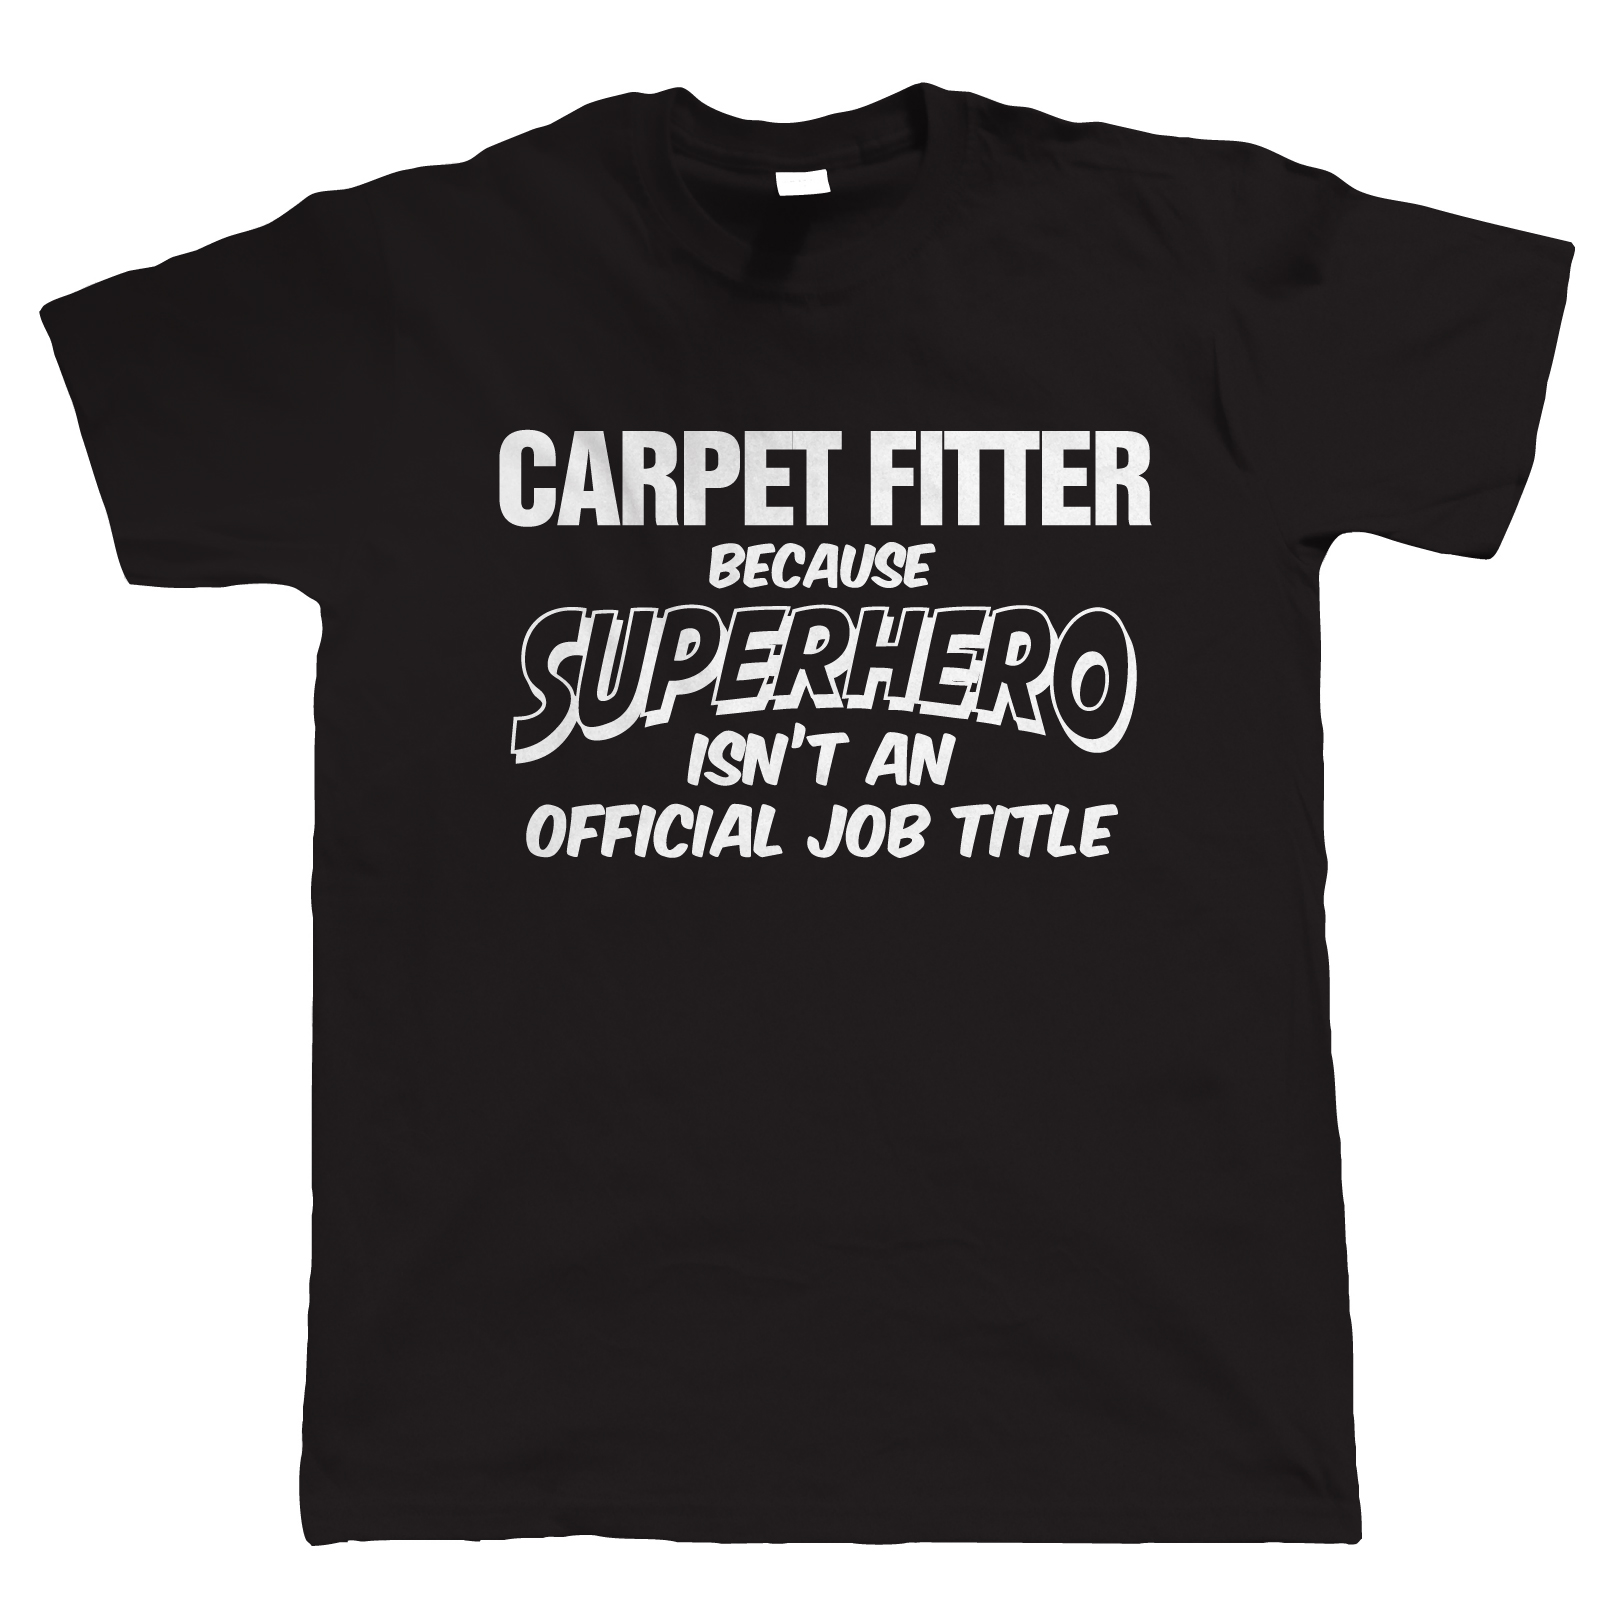 Carpet Fitter Superhero, Mens Funny T-Shirt, Christmas Gift for Dad Fathers Day MenS O-Neck Printed Tee Shirt Top Tee